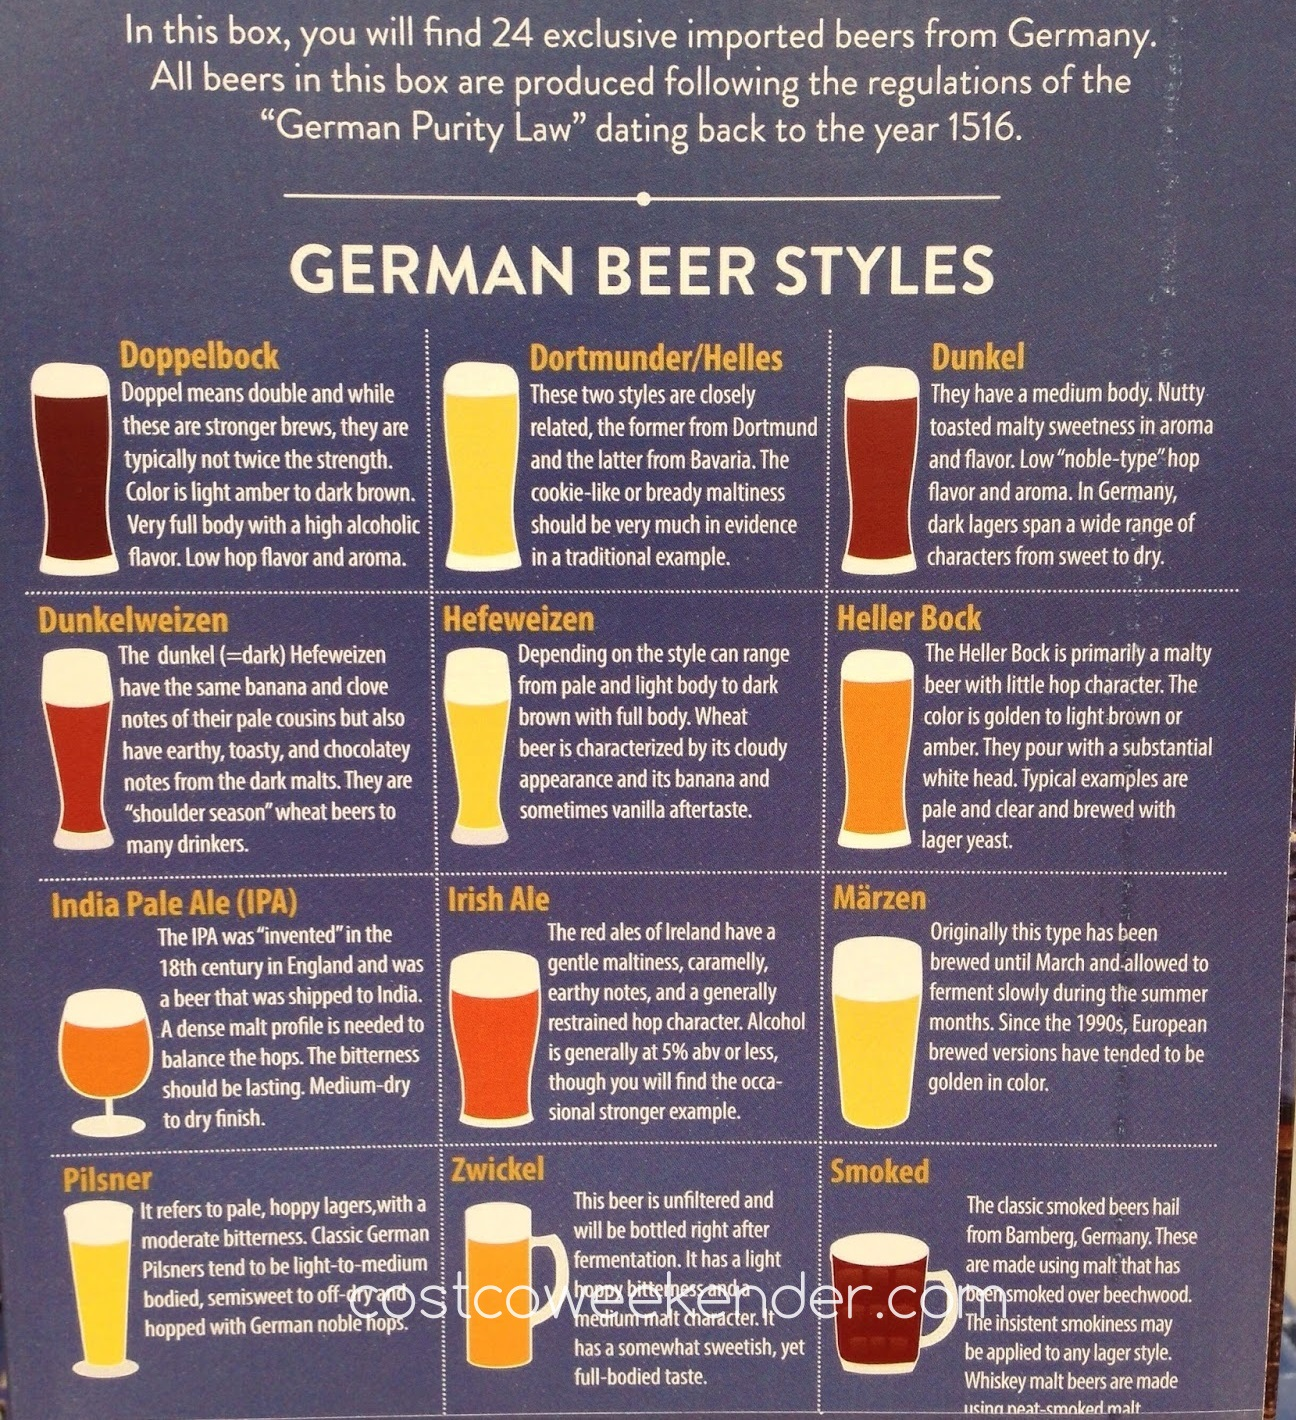 Types of German beer featured in Costco's Advent Calendar